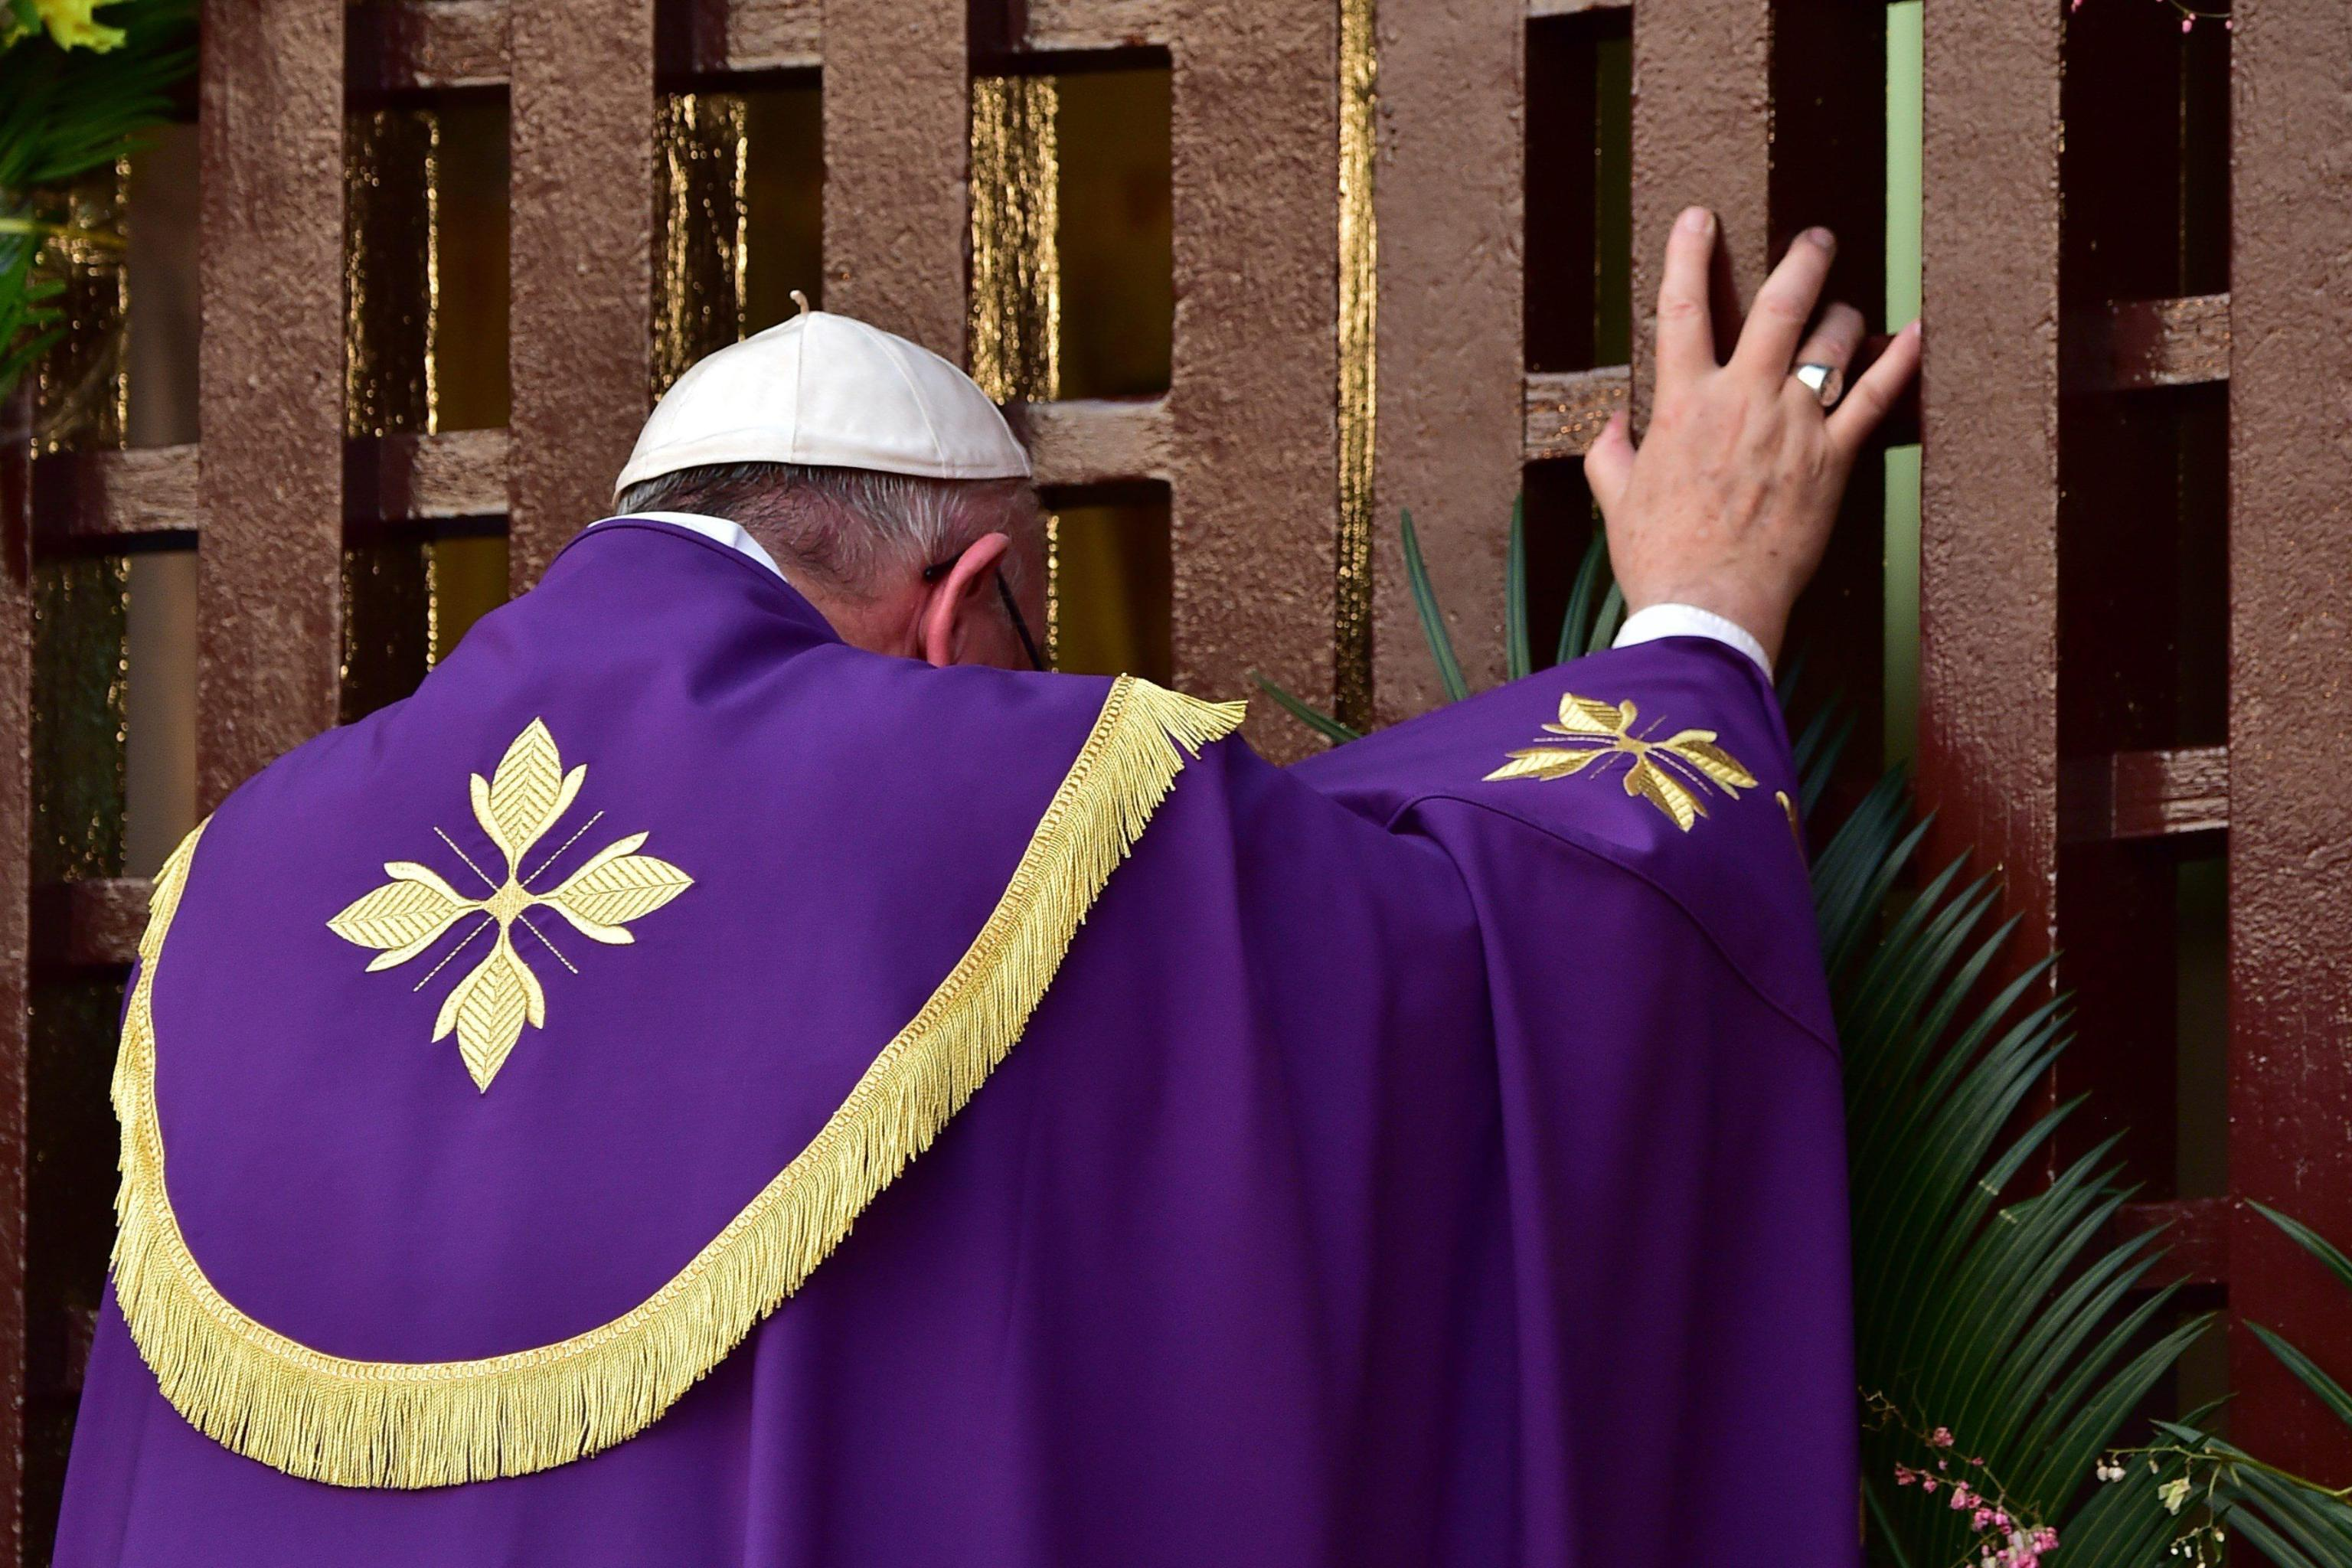 Pope Francis opens the Holy door at Bangui Cathedral